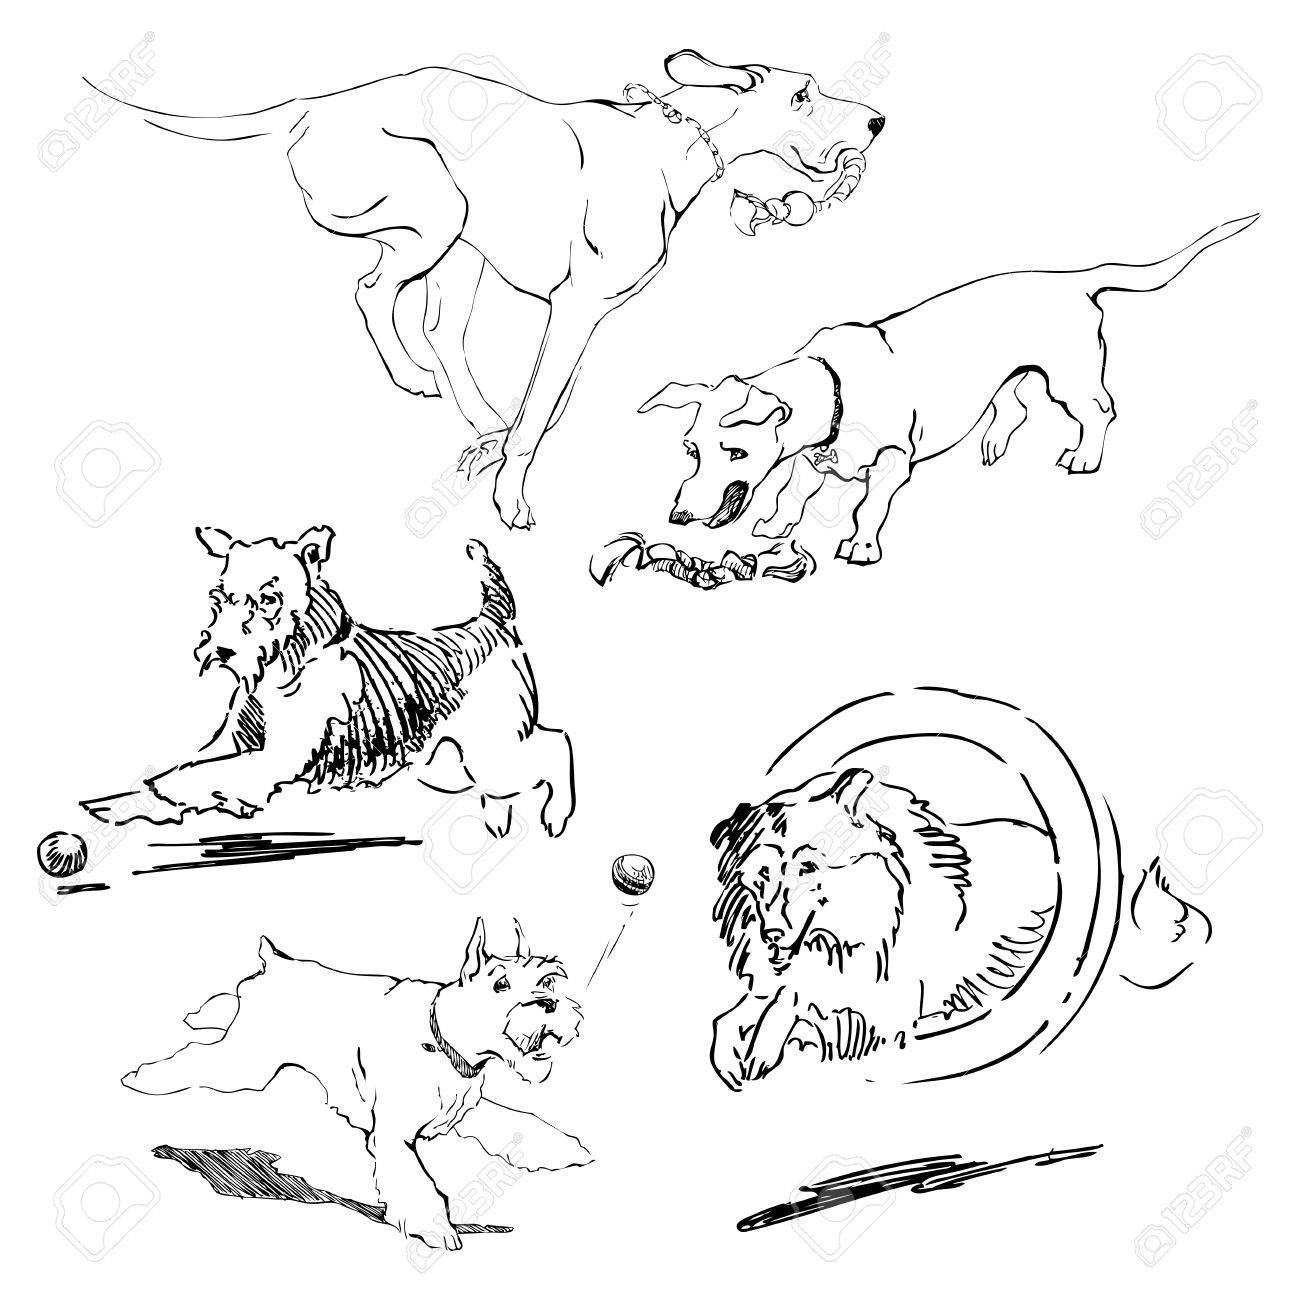 A set of drawings of different breeds dogs in motion games with dogs for a